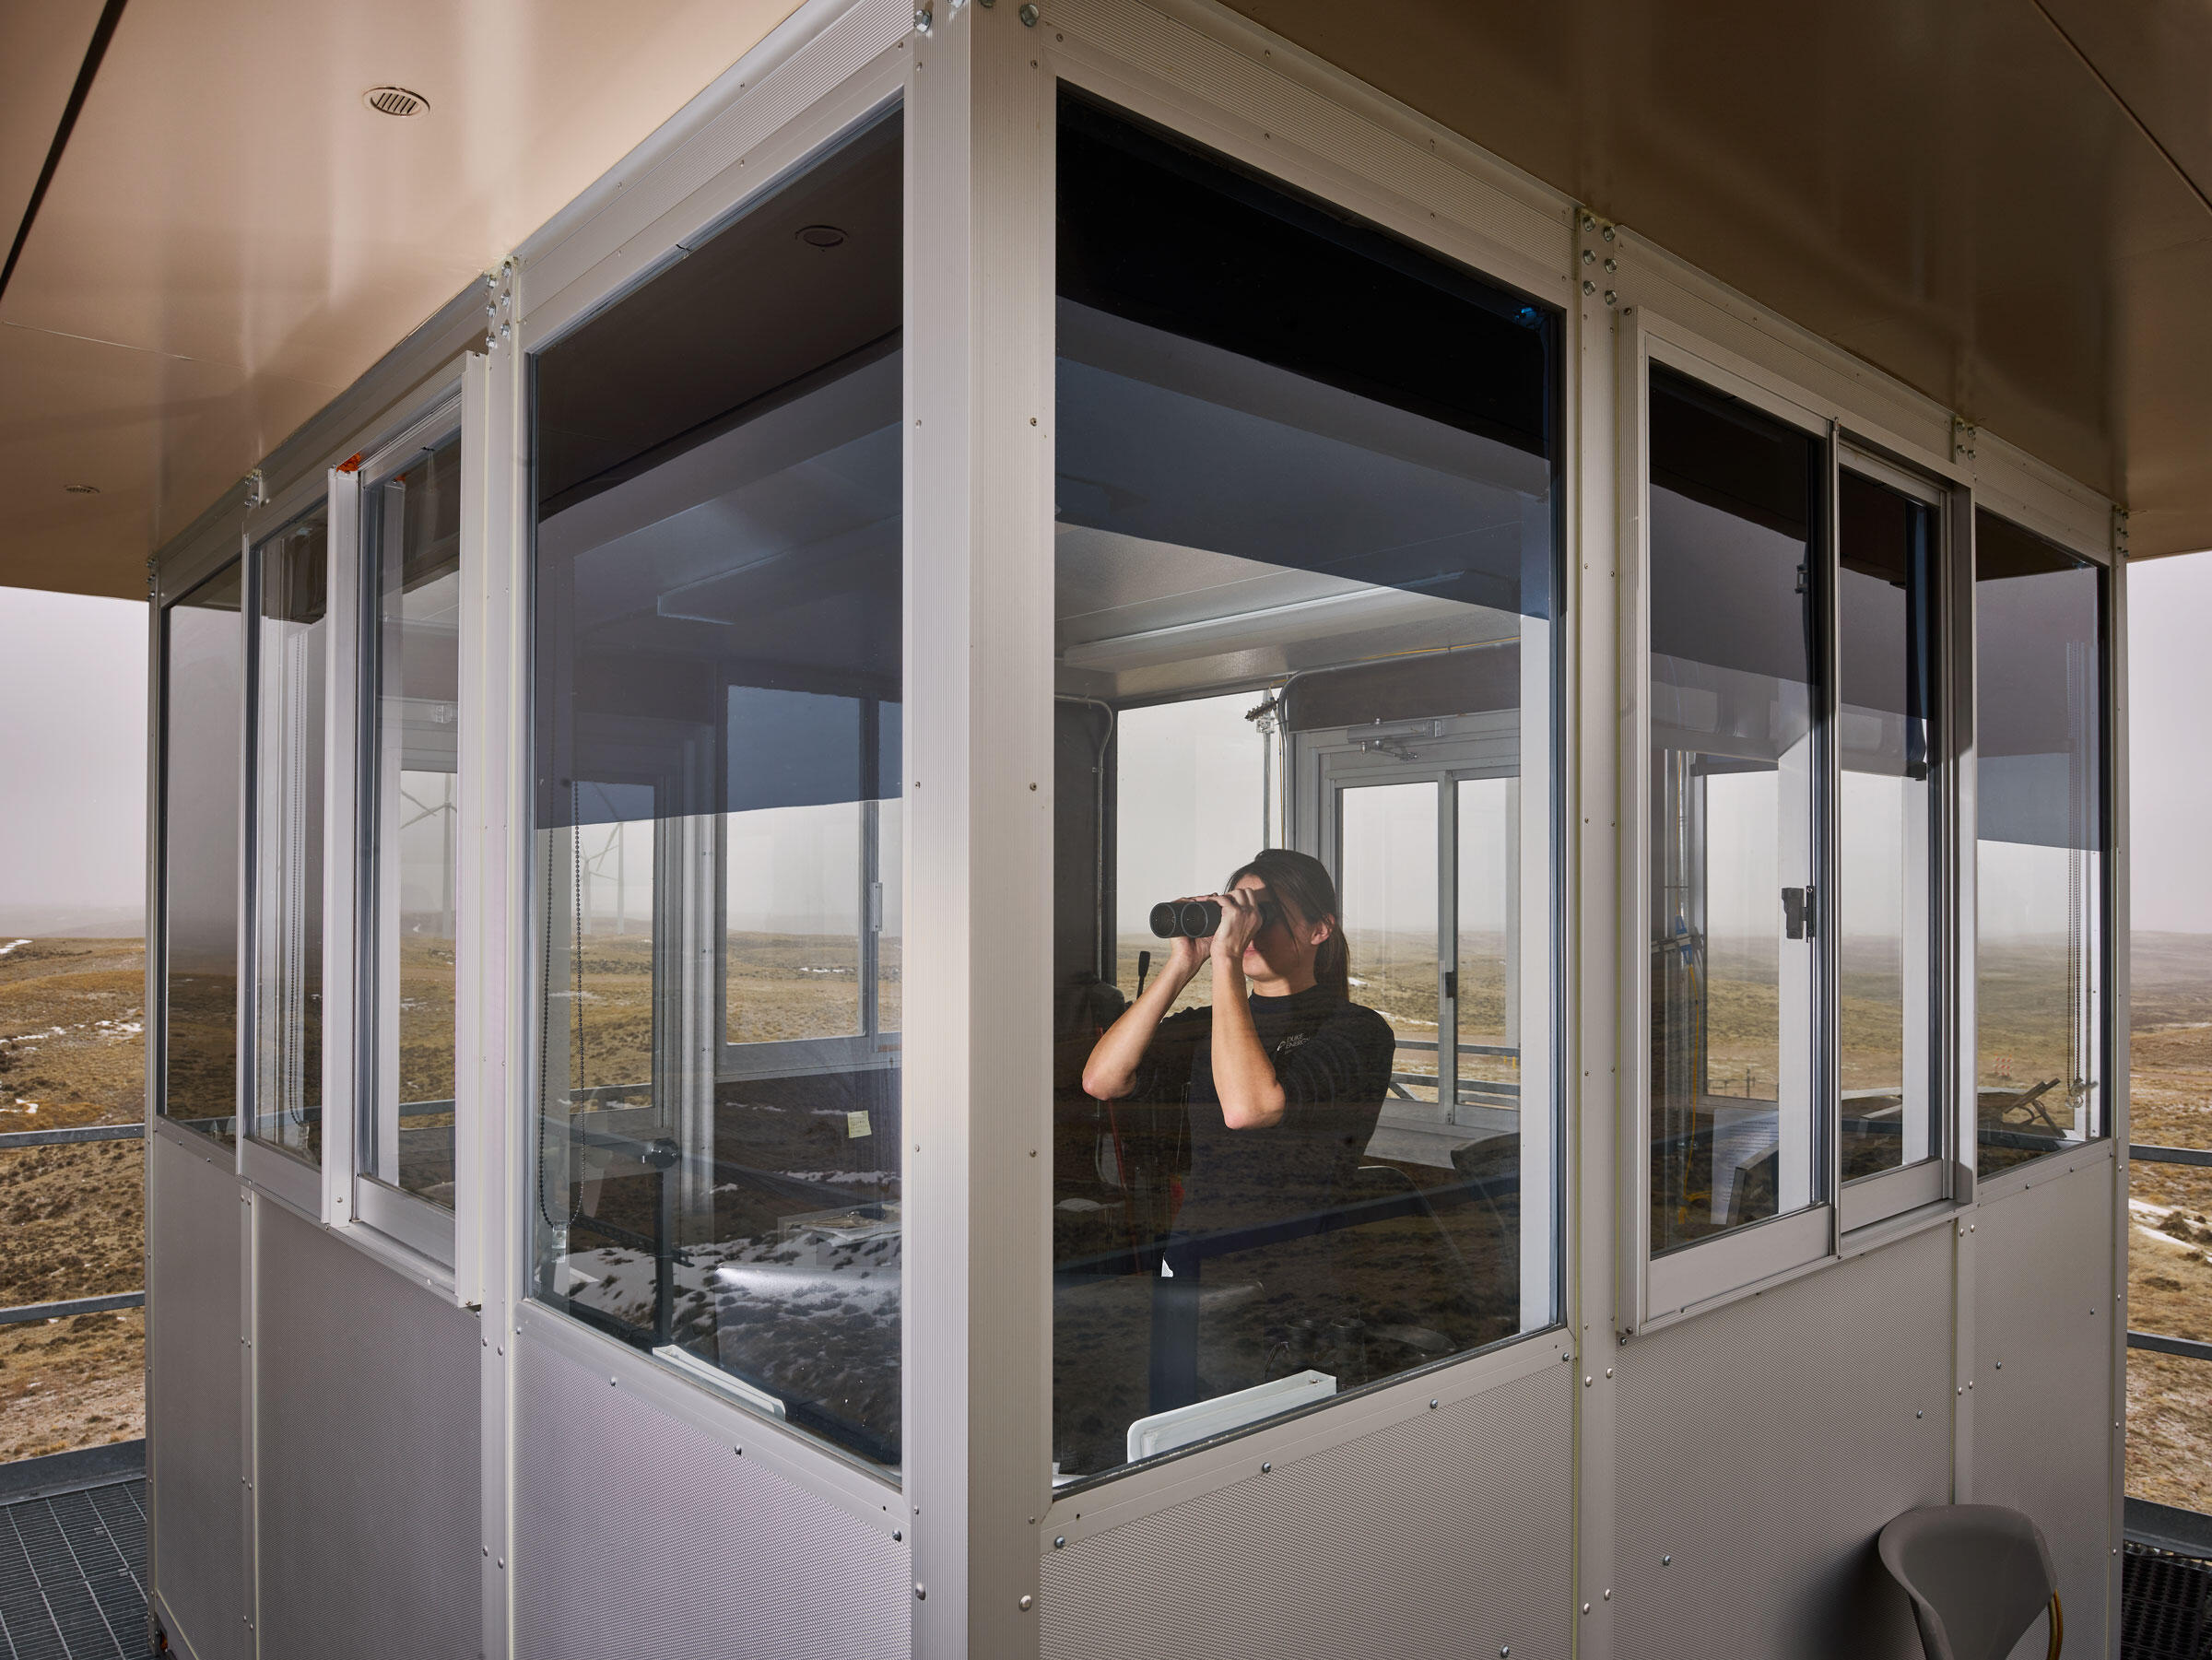 Inside an observation tower, Taylor Berge, an eagle observation specialist, looks for birds at Top of the World. Spencer Lowell